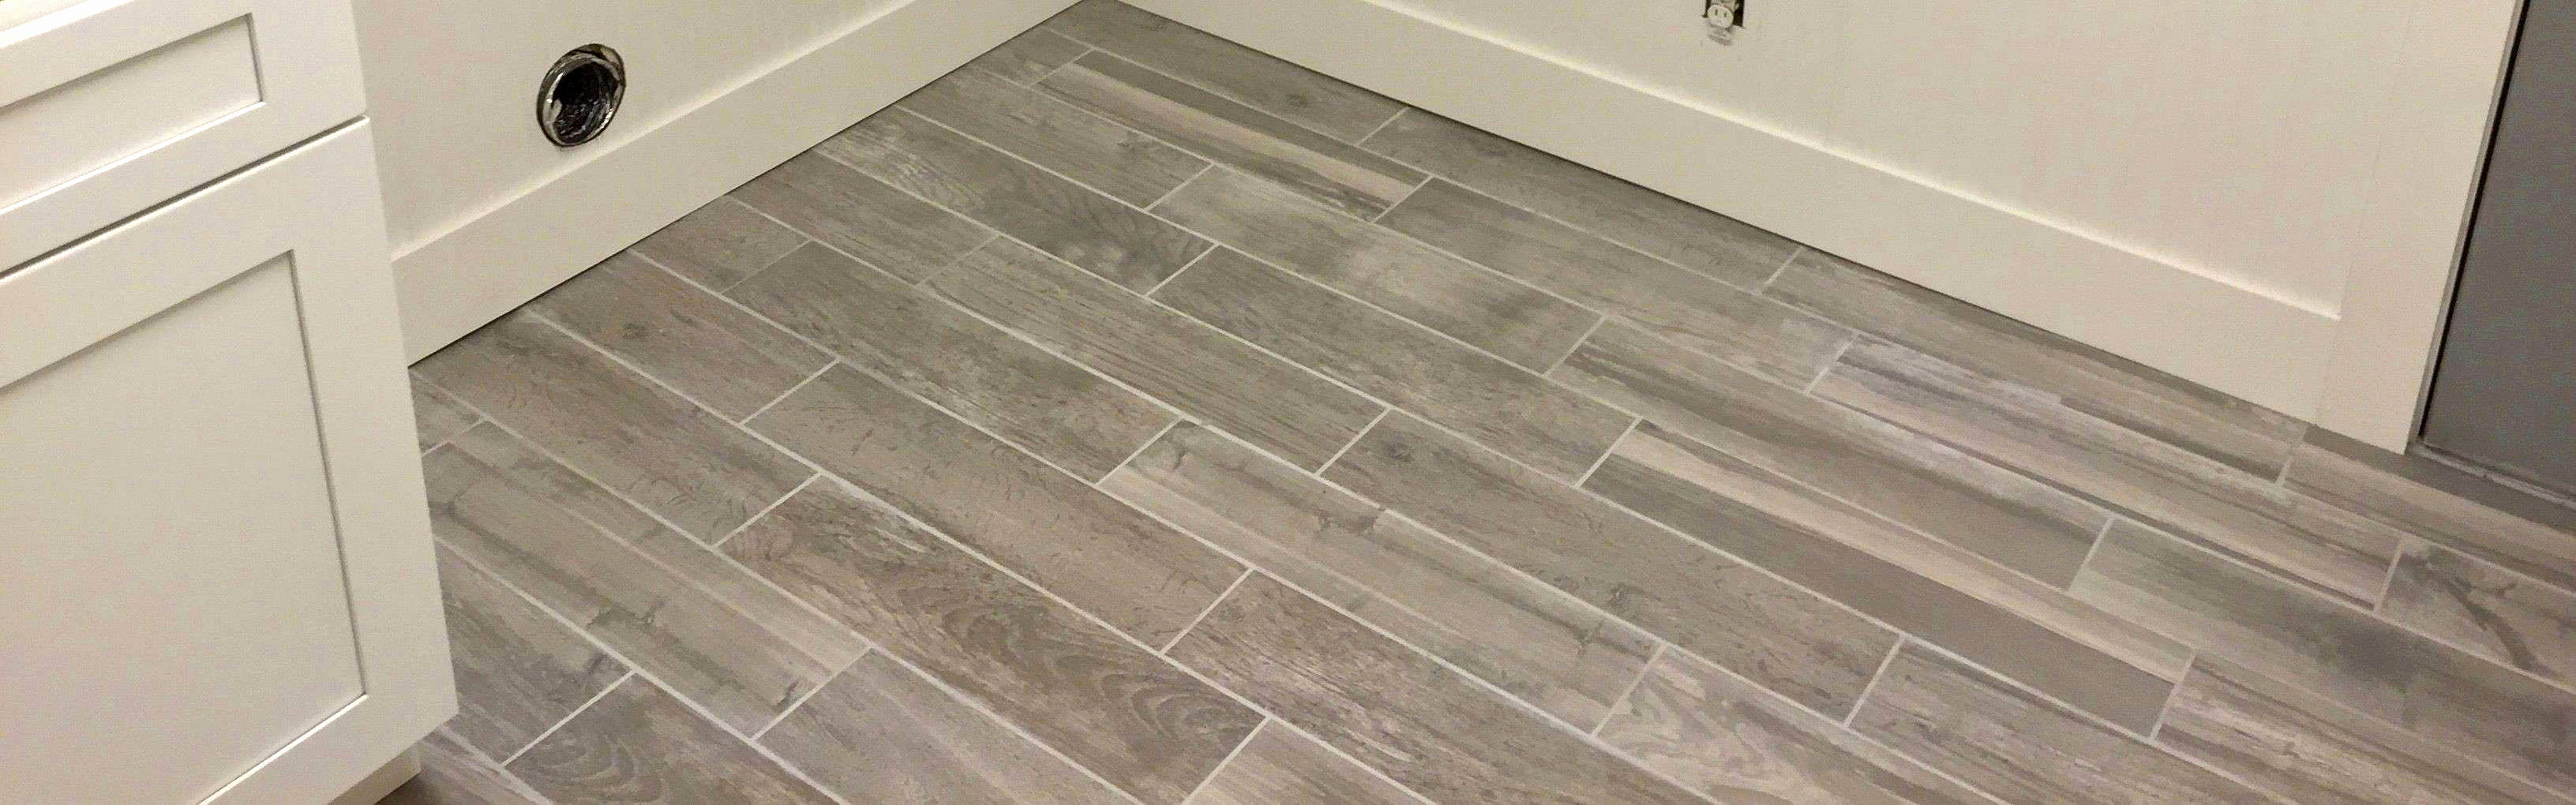 how much should it cost to refinish hardwood floors of ceramic tile contractors 11 beautiful kitchen floor tile patterns intended for unique bathroom tiling ideas best h sink install bathroom i 0d exciting beautiful fresh bathroom floor 50 beautiful cost to refinish hardwood